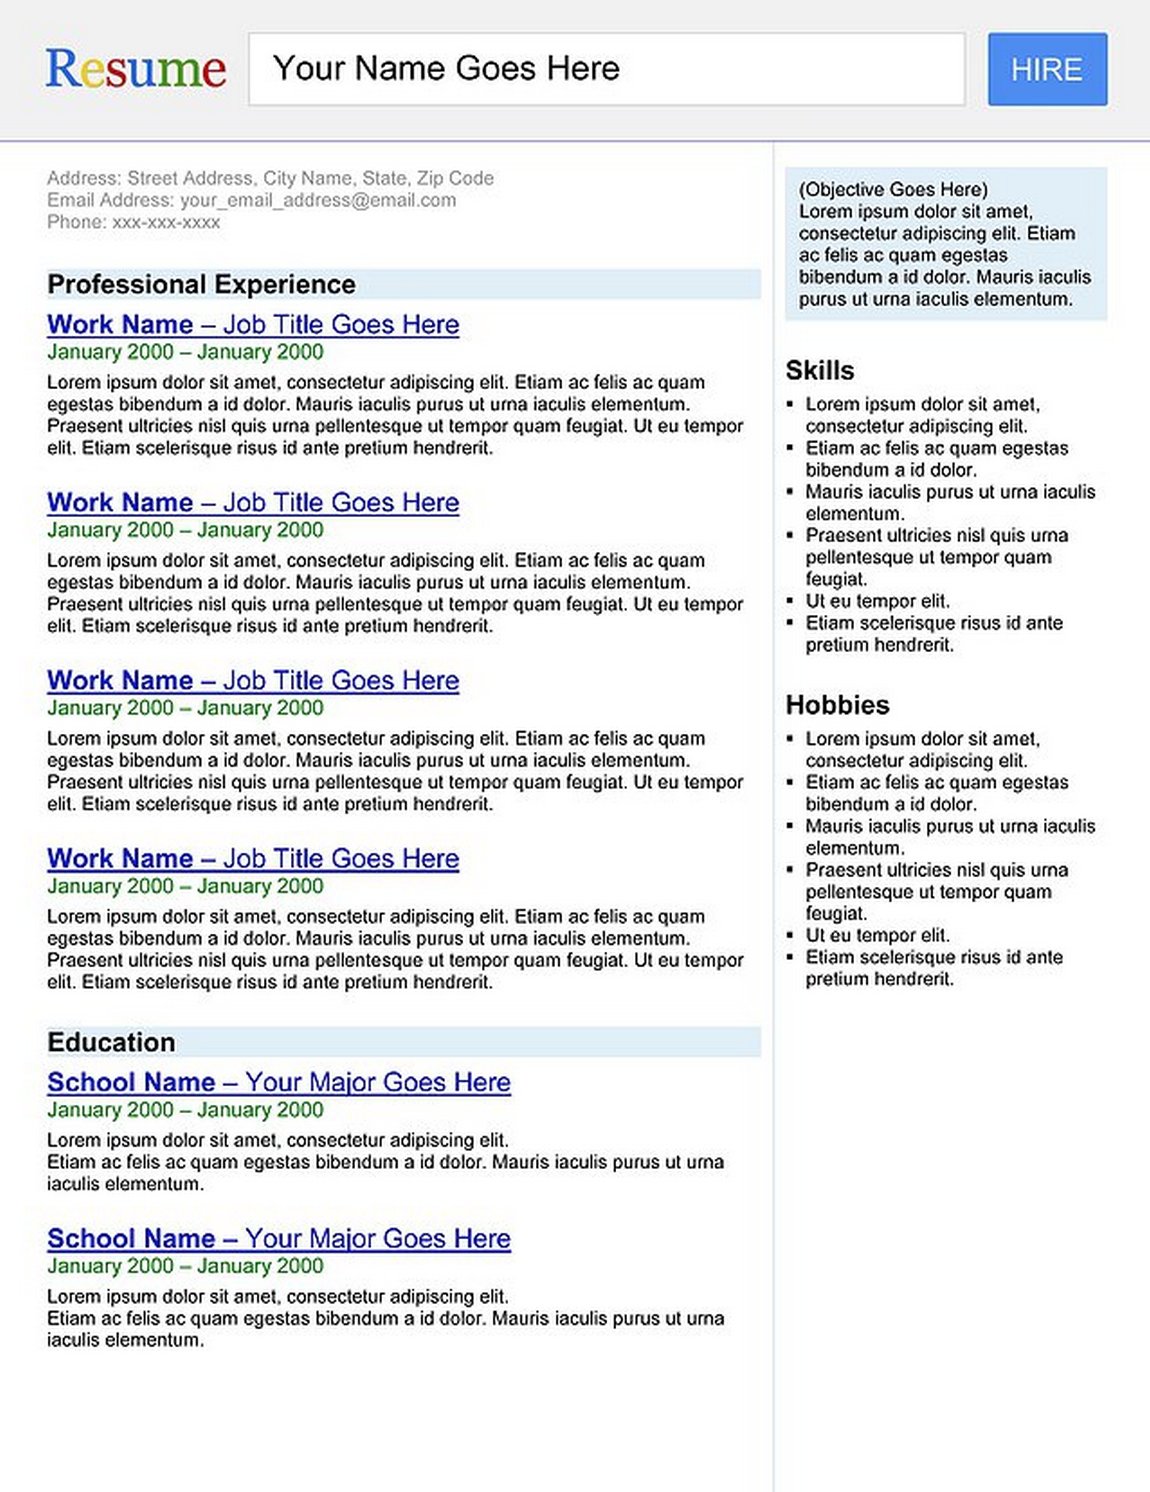 Search Engine Resume Template  Creative Resumes For Download